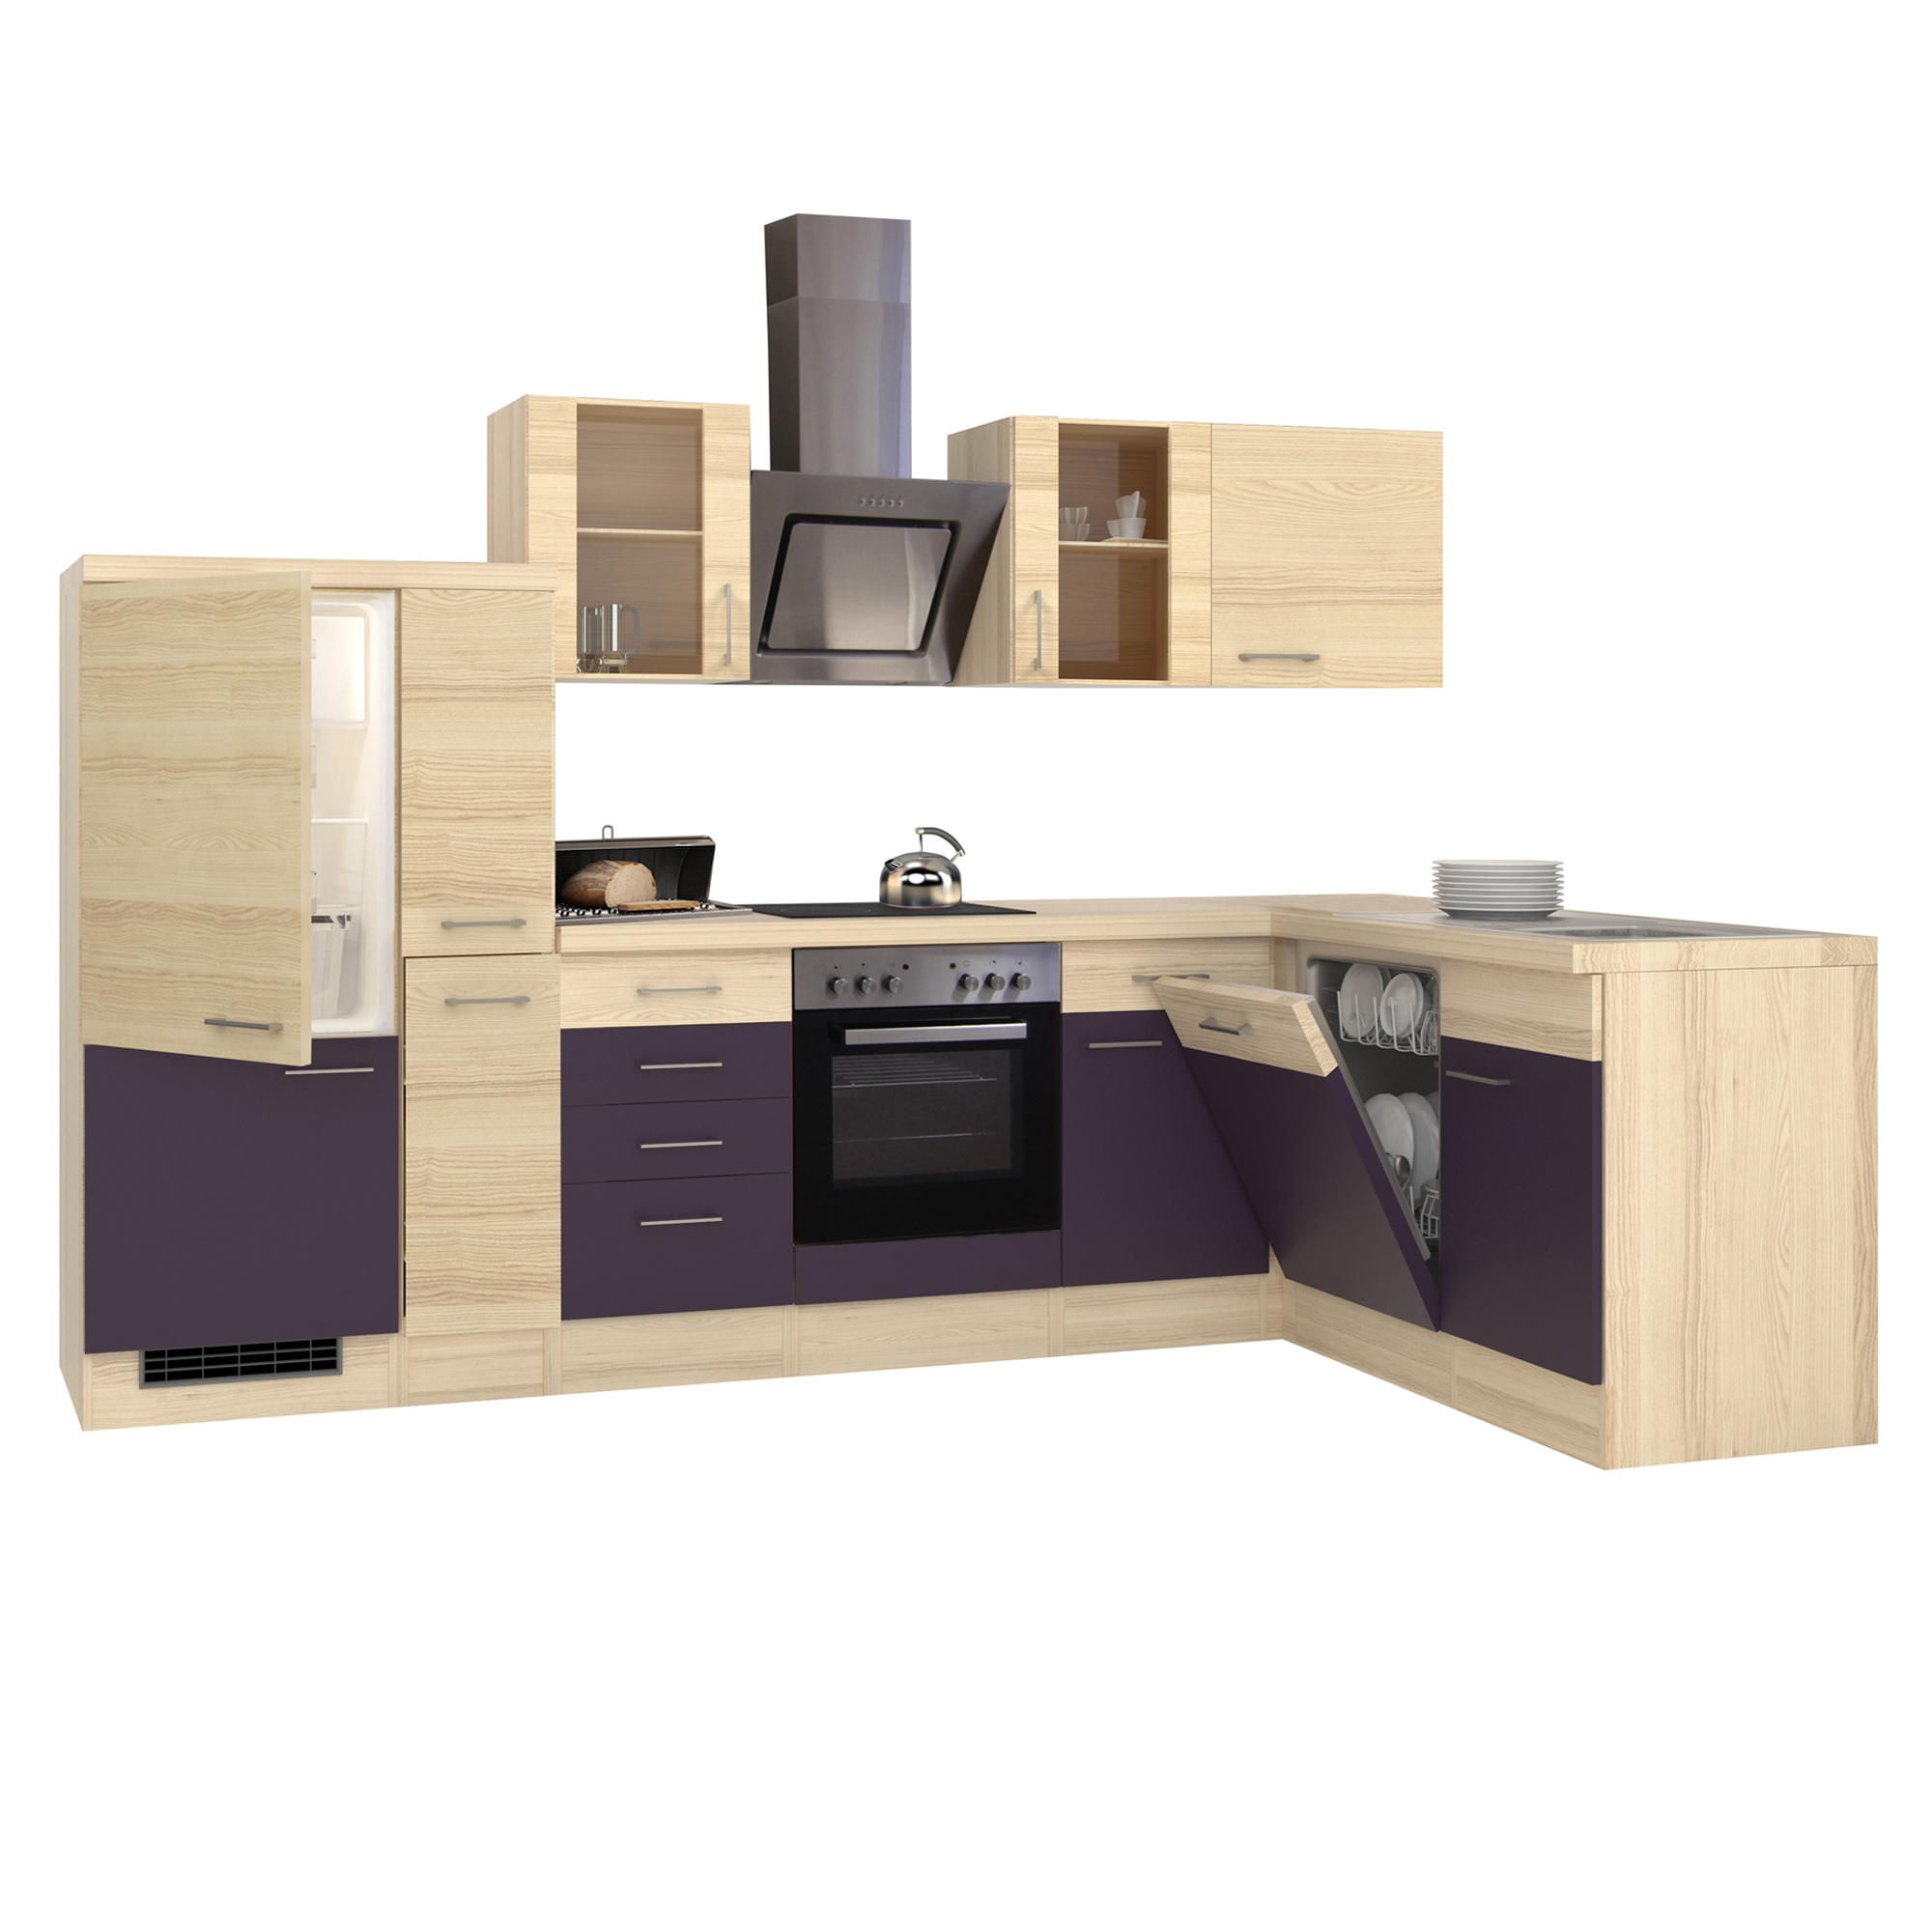 winkelk che mit elektroger ten eck k che k chenzeile l form 310x170 cm aubergine ebay. Black Bedroom Furniture Sets. Home Design Ideas